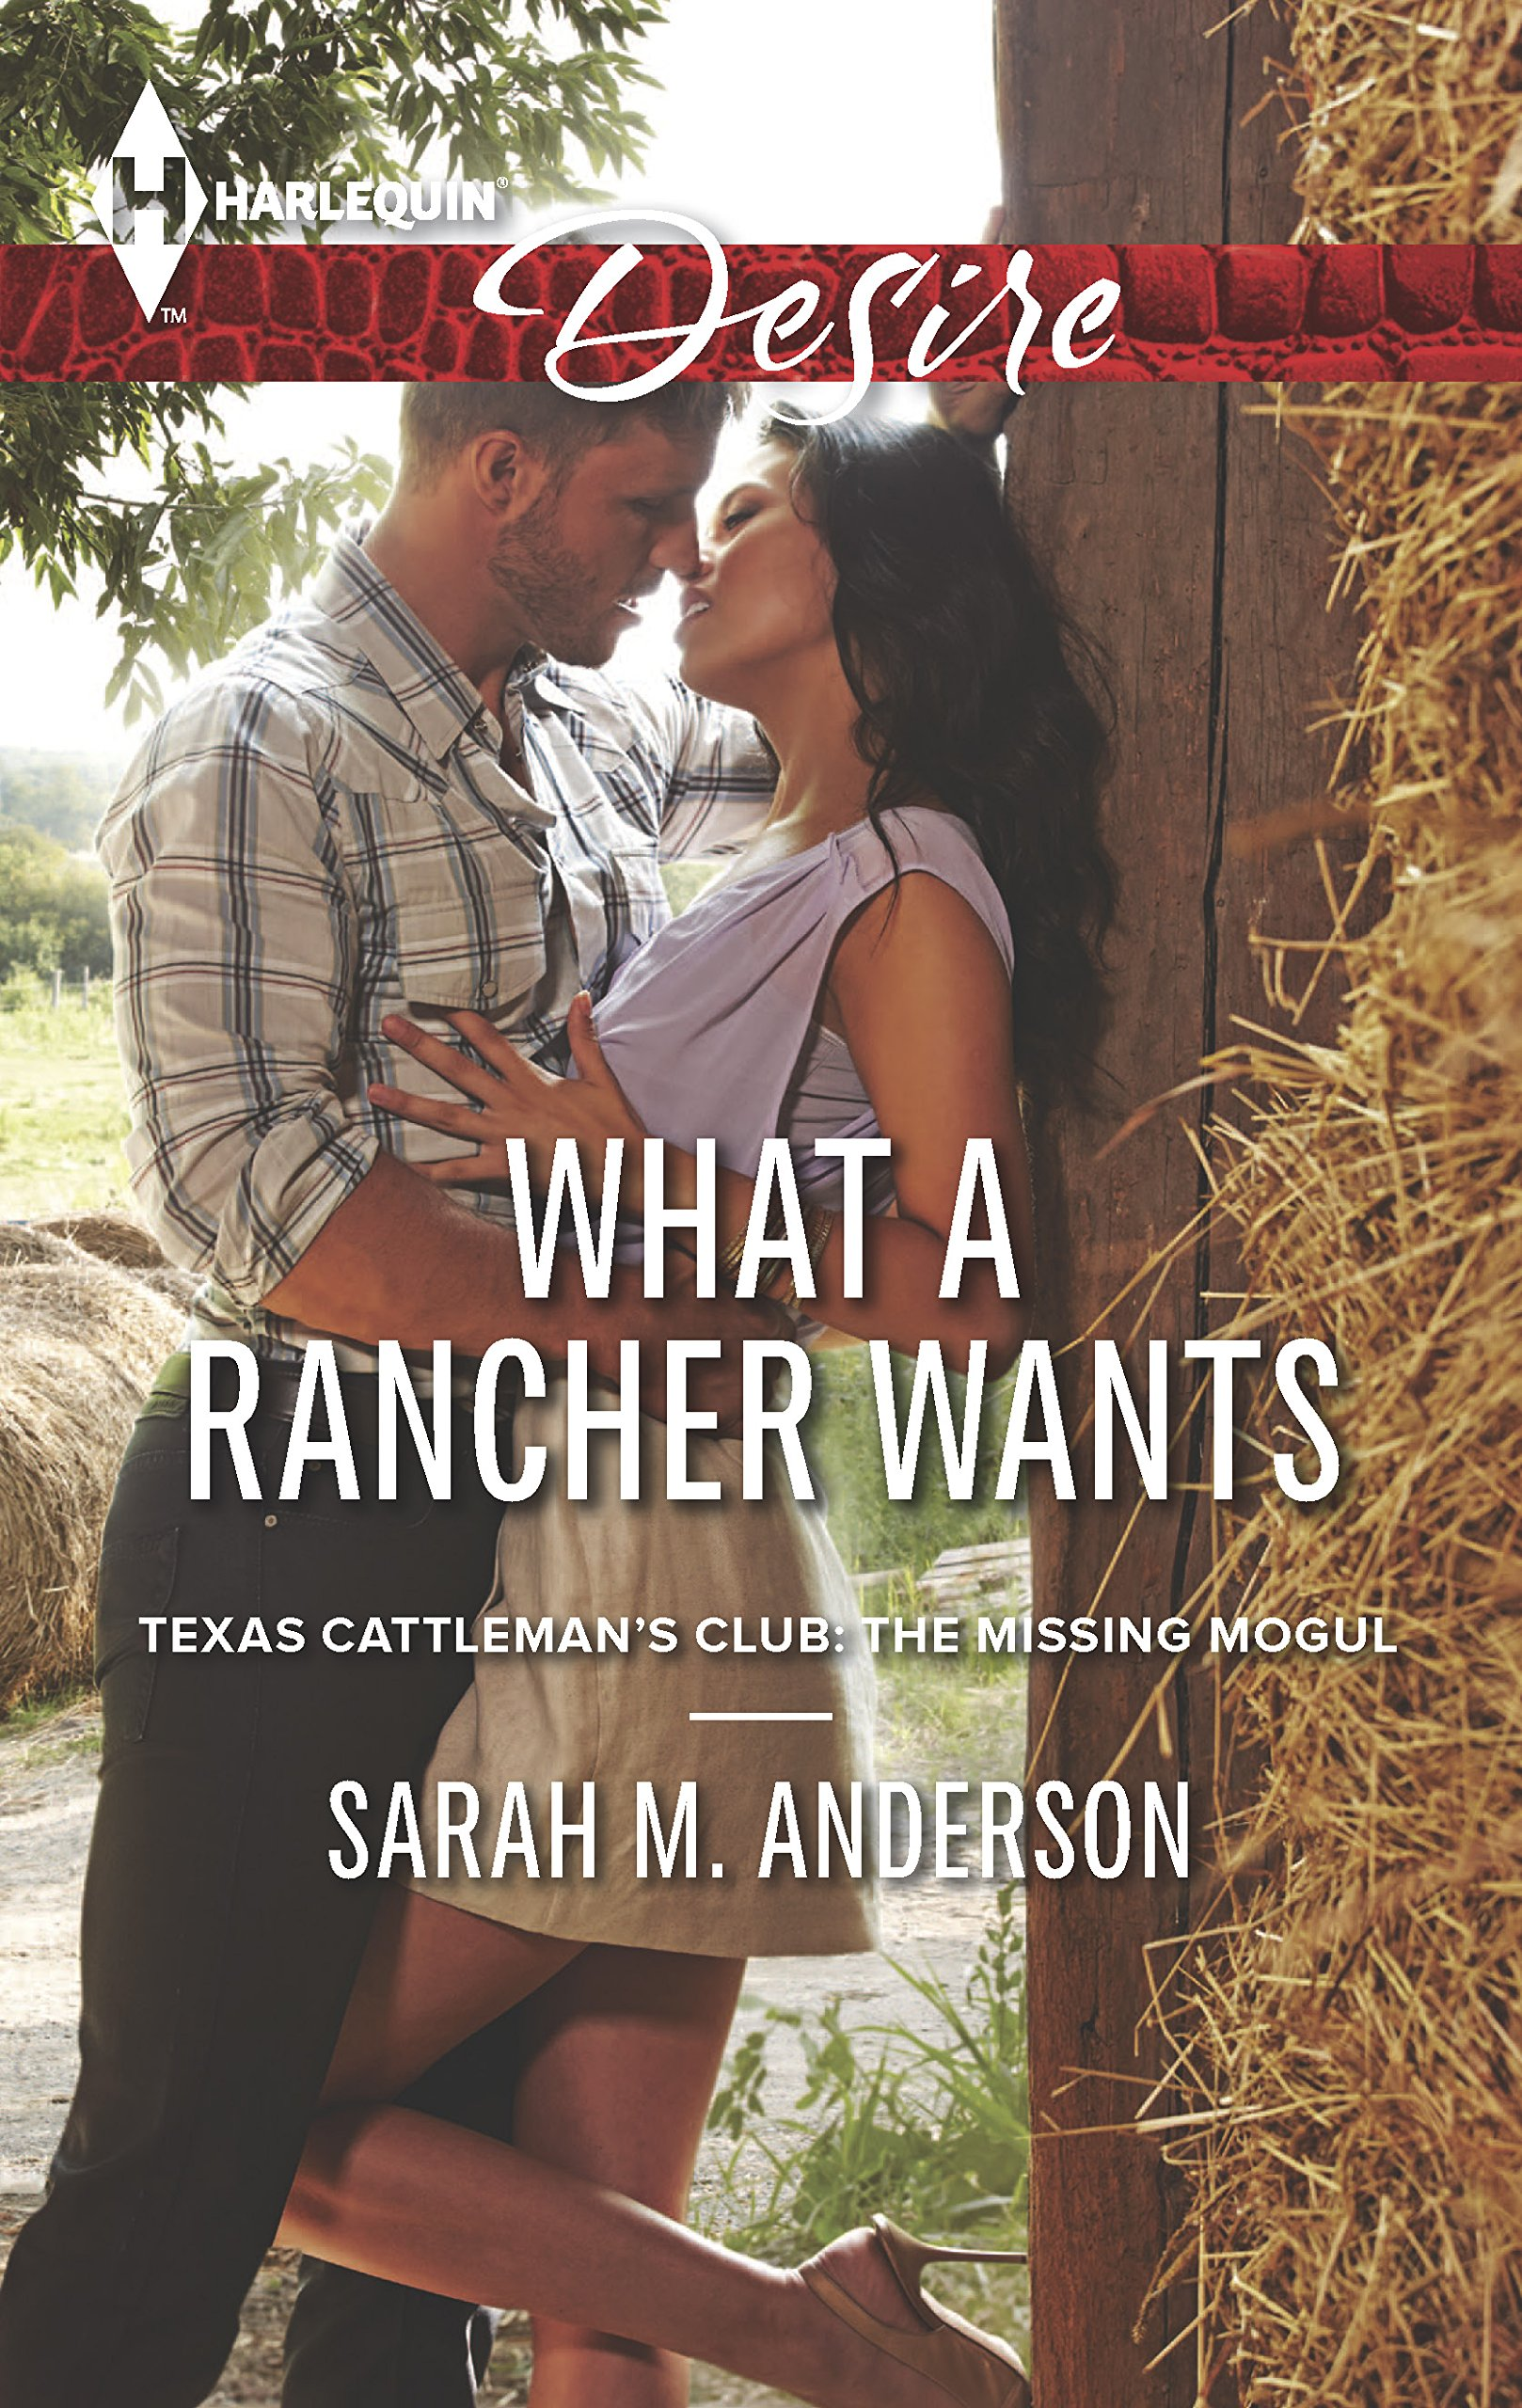 What a Rancher Wants (Texas Cattleman's Club: The Missing Mogul) PDF